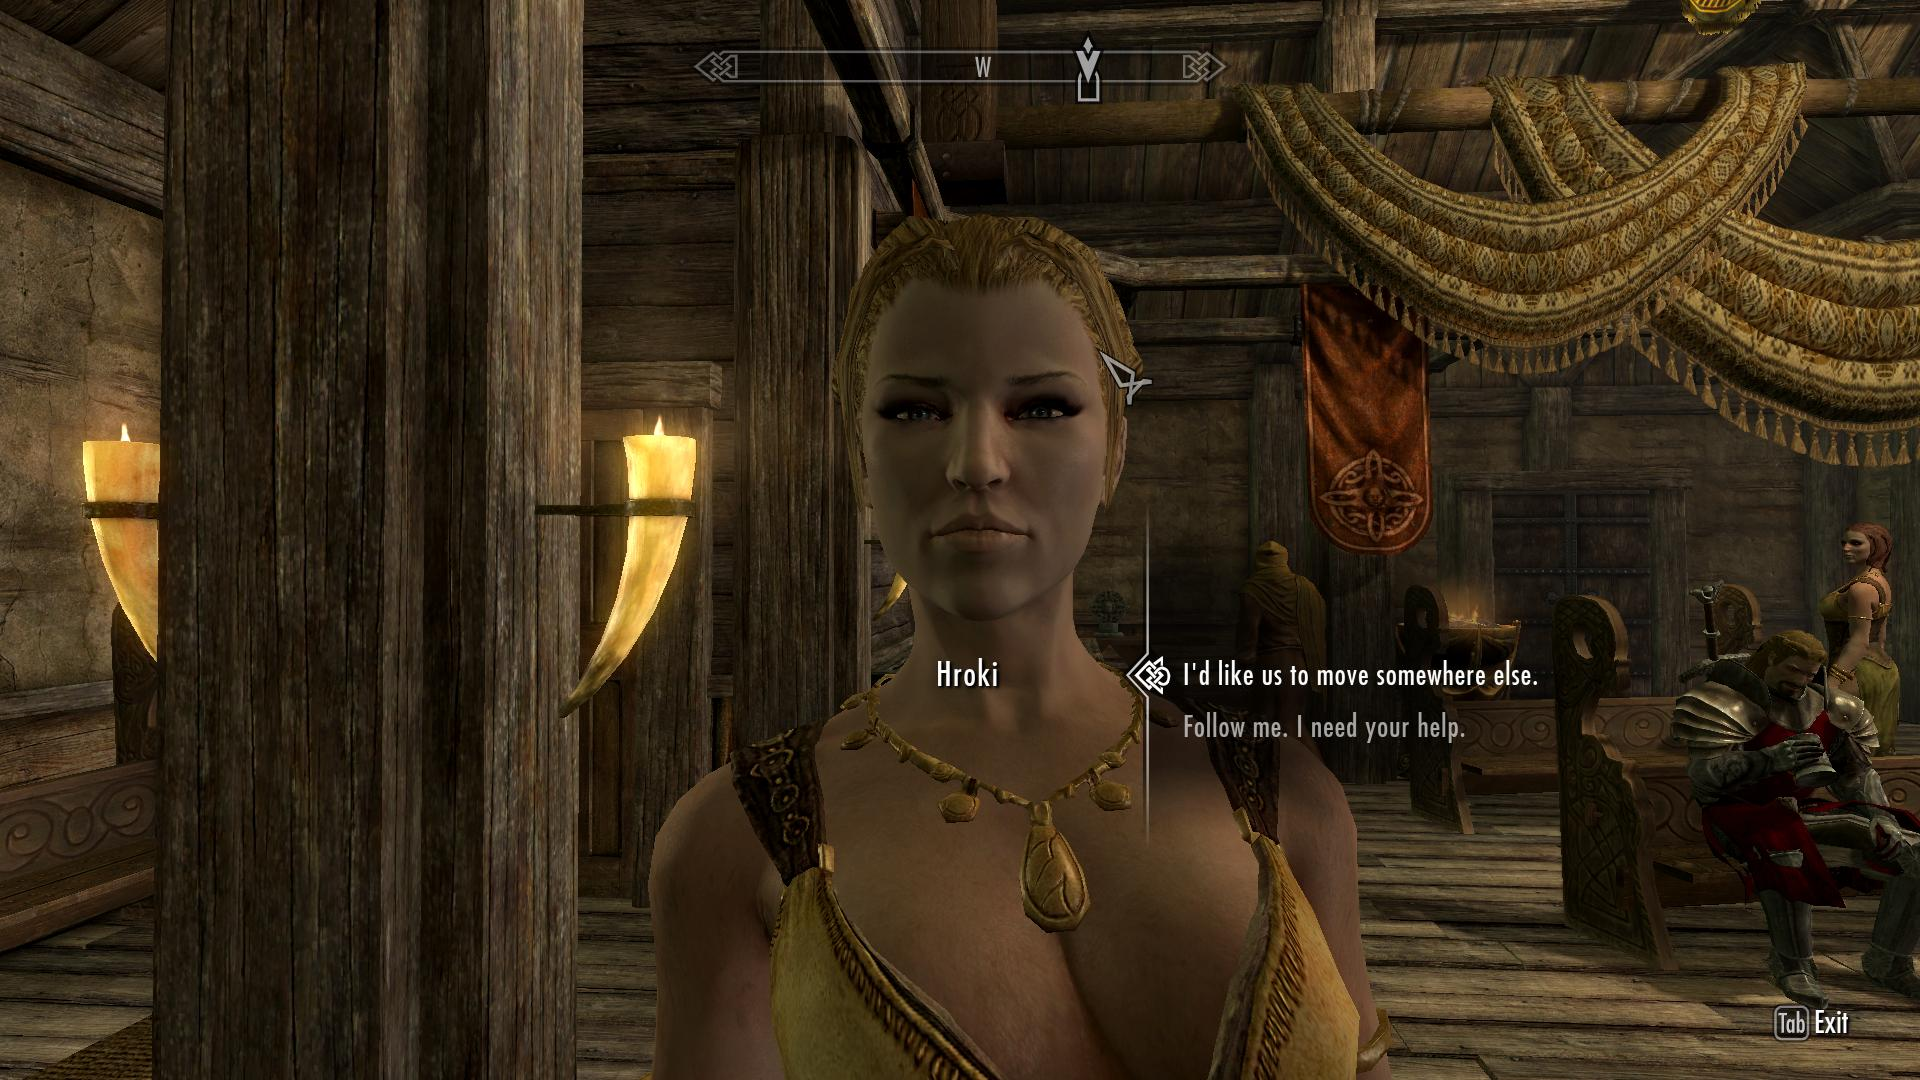 free dating site for married in skyrim This is a disambiguation page—a navigational aid which lists other pages that might otherwise share the same title if an article link refers here, consider backtracking and fixing it, so that it points directly to the intended page marriage may refer to: marriage (skyrim), marriage (online.